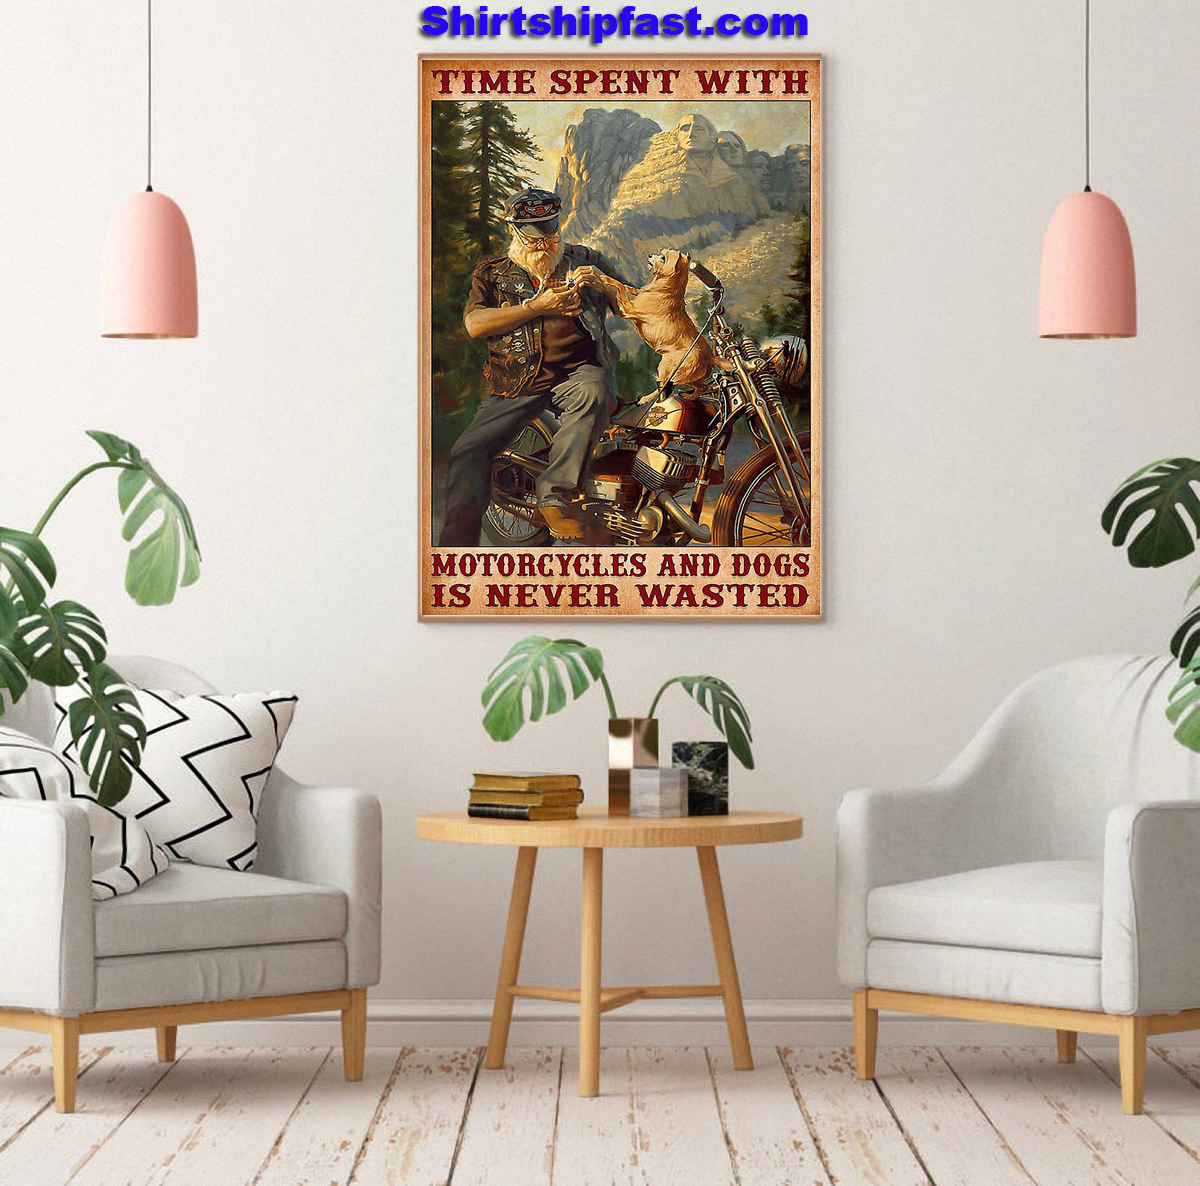 Time spent with motorcycles and dogs is never wasted poster - Picture 3